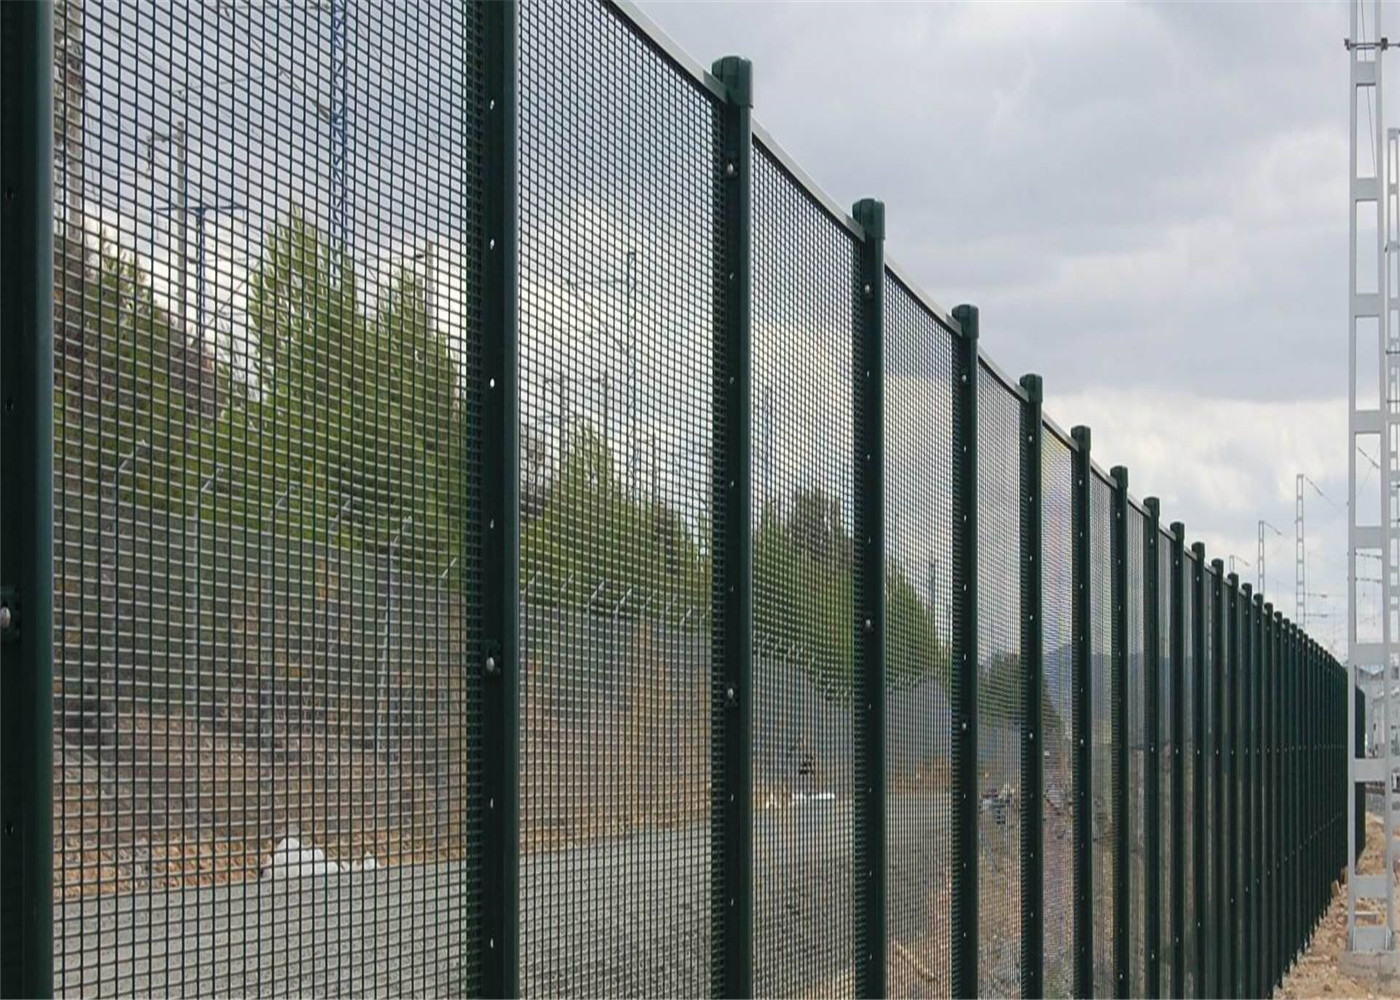 High Density Prison Military High Security 358 Fence Anti